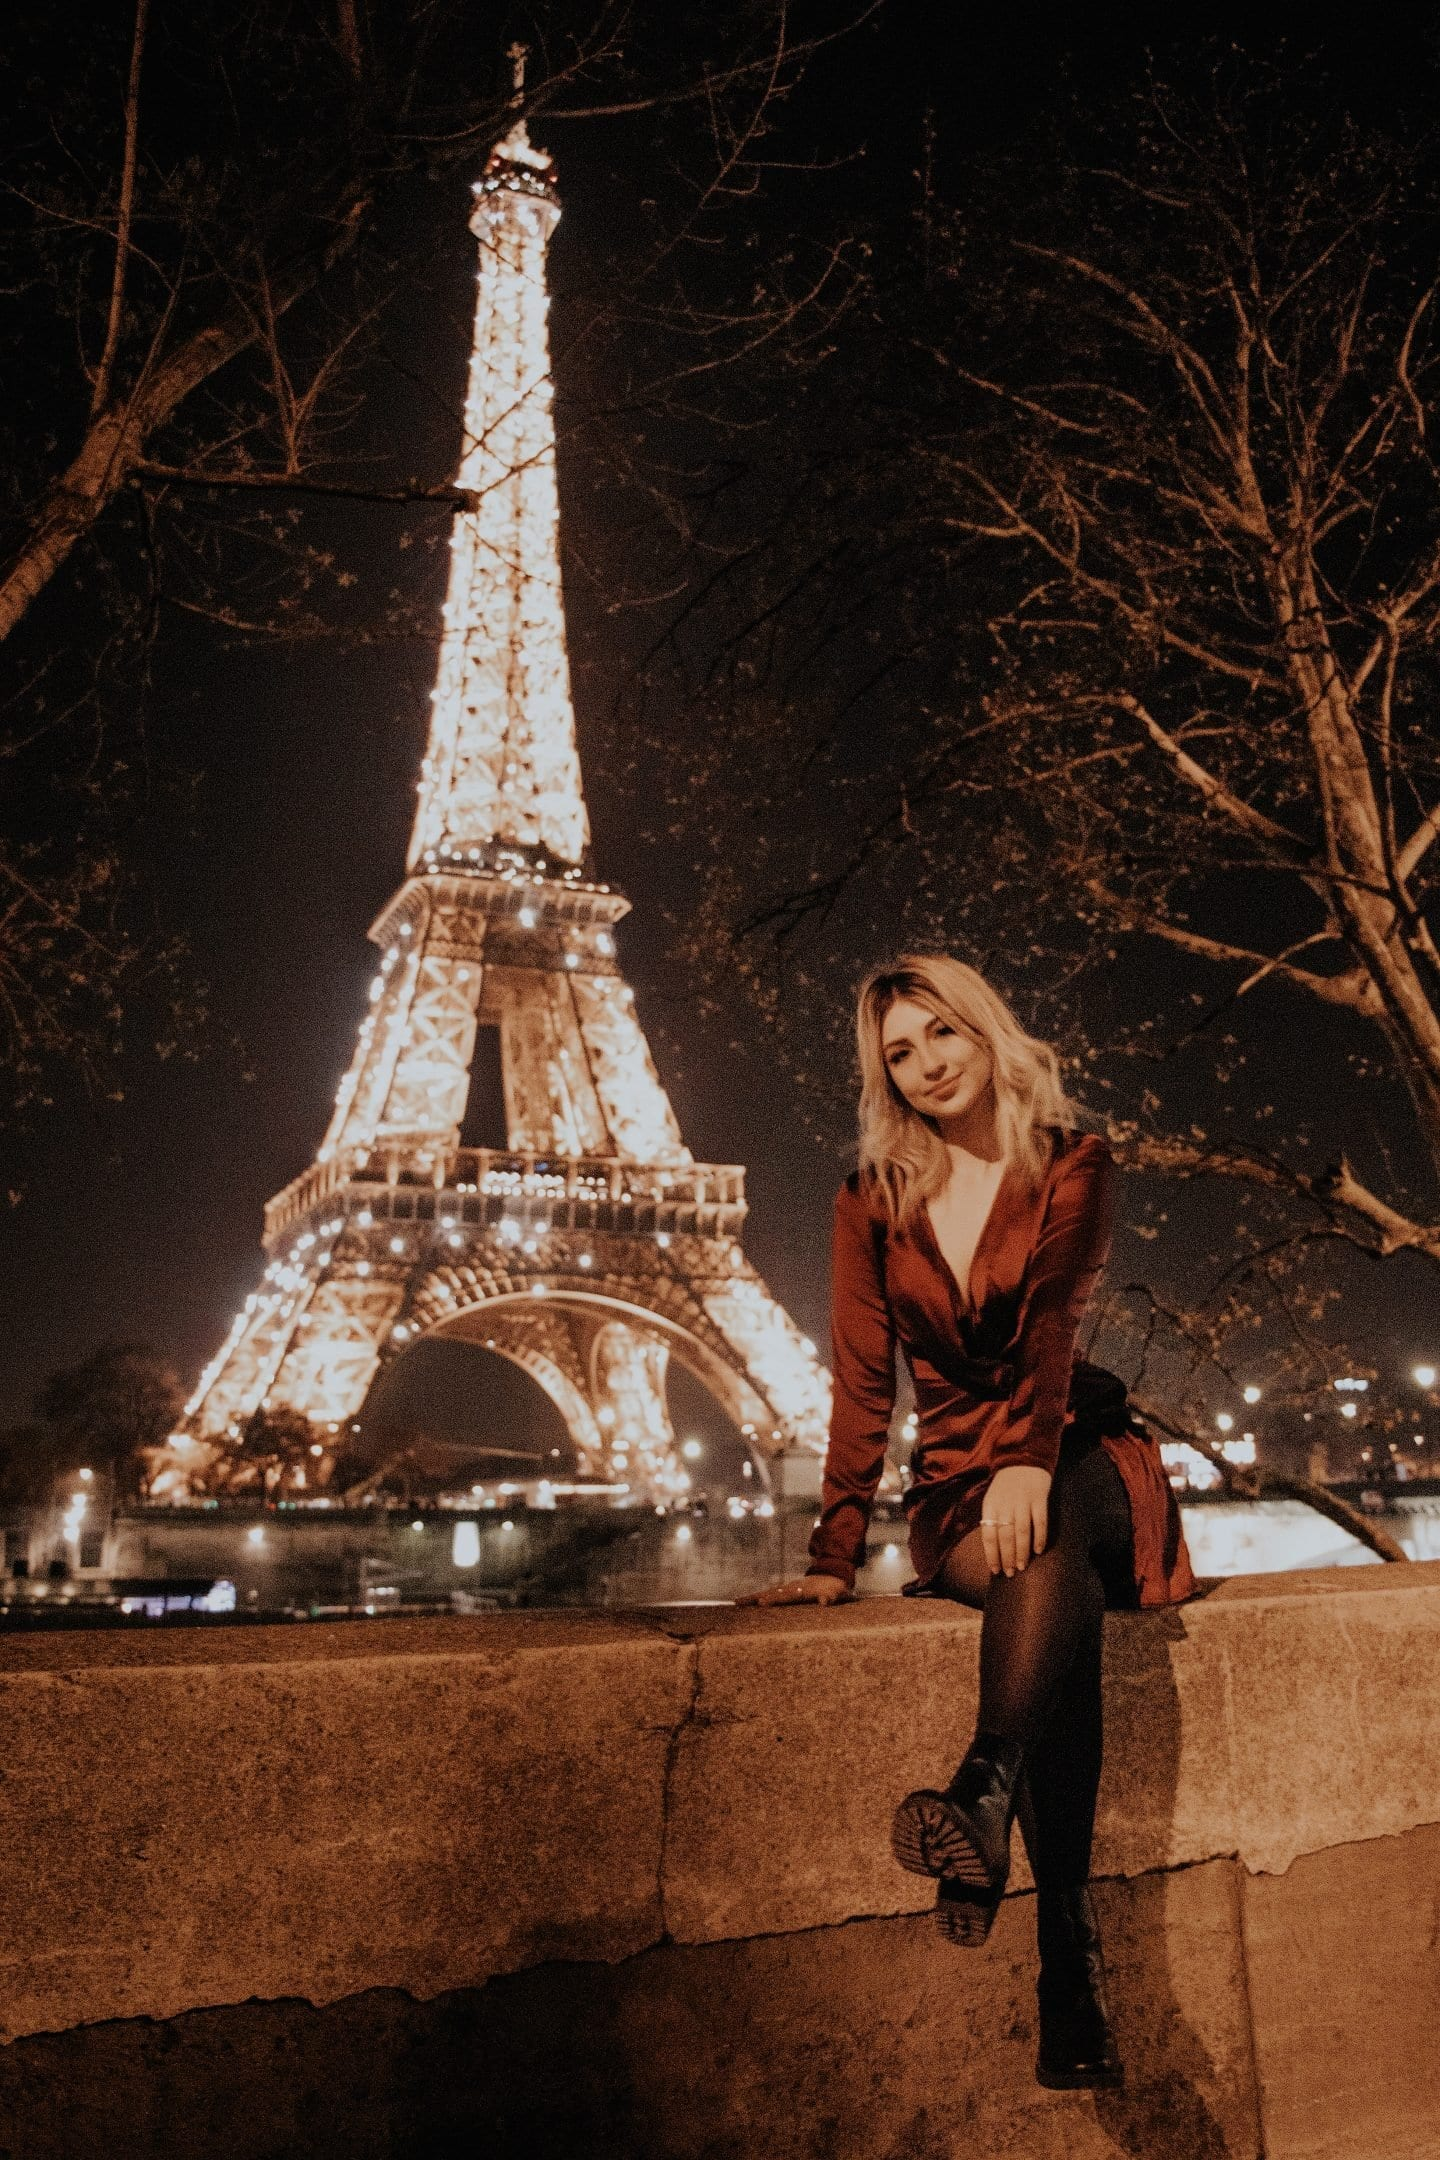 How to Get the Most Instagrammable Pictures in Paris